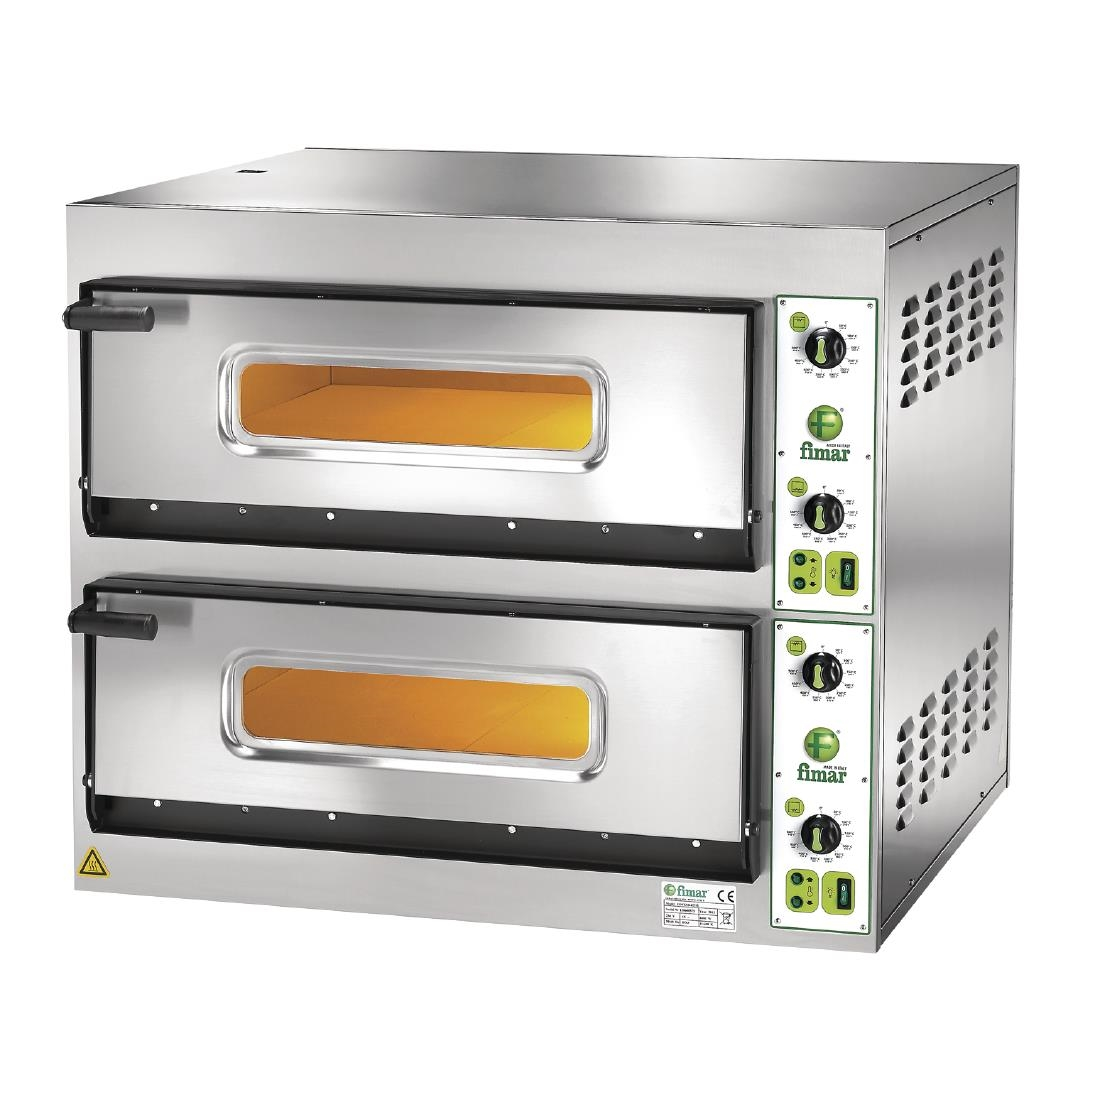 Image of Fimar FES 4 Electric Pizza Oven 3 Phase